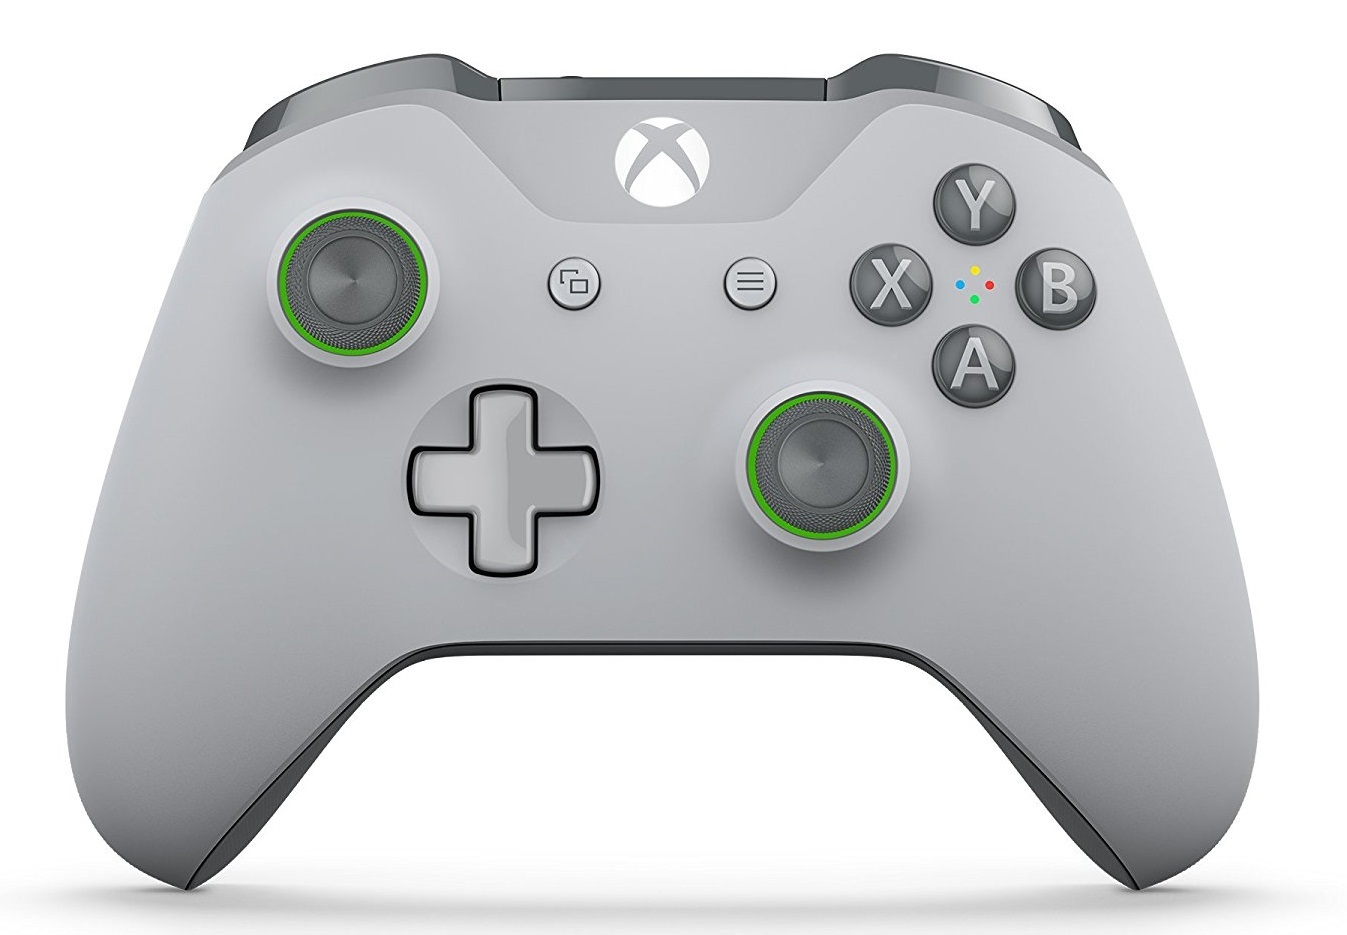 Xbox One Wireless Controller - Grey/Green (with Bluetooth) for Xbox One image